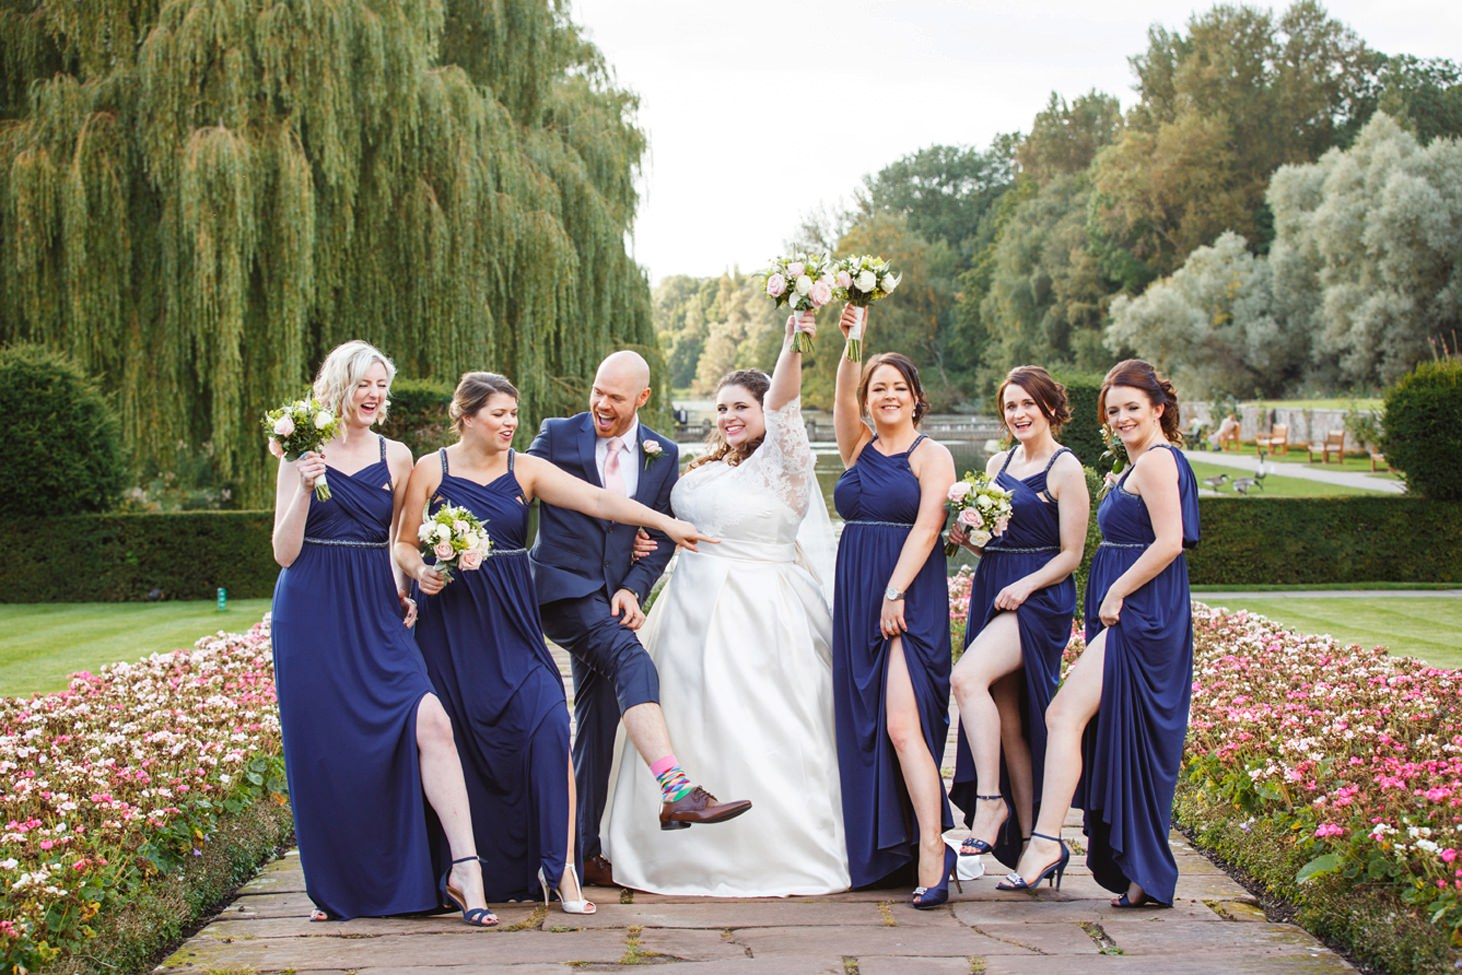 Coombe Abbey wedding photography Sarah Ann Wright 048